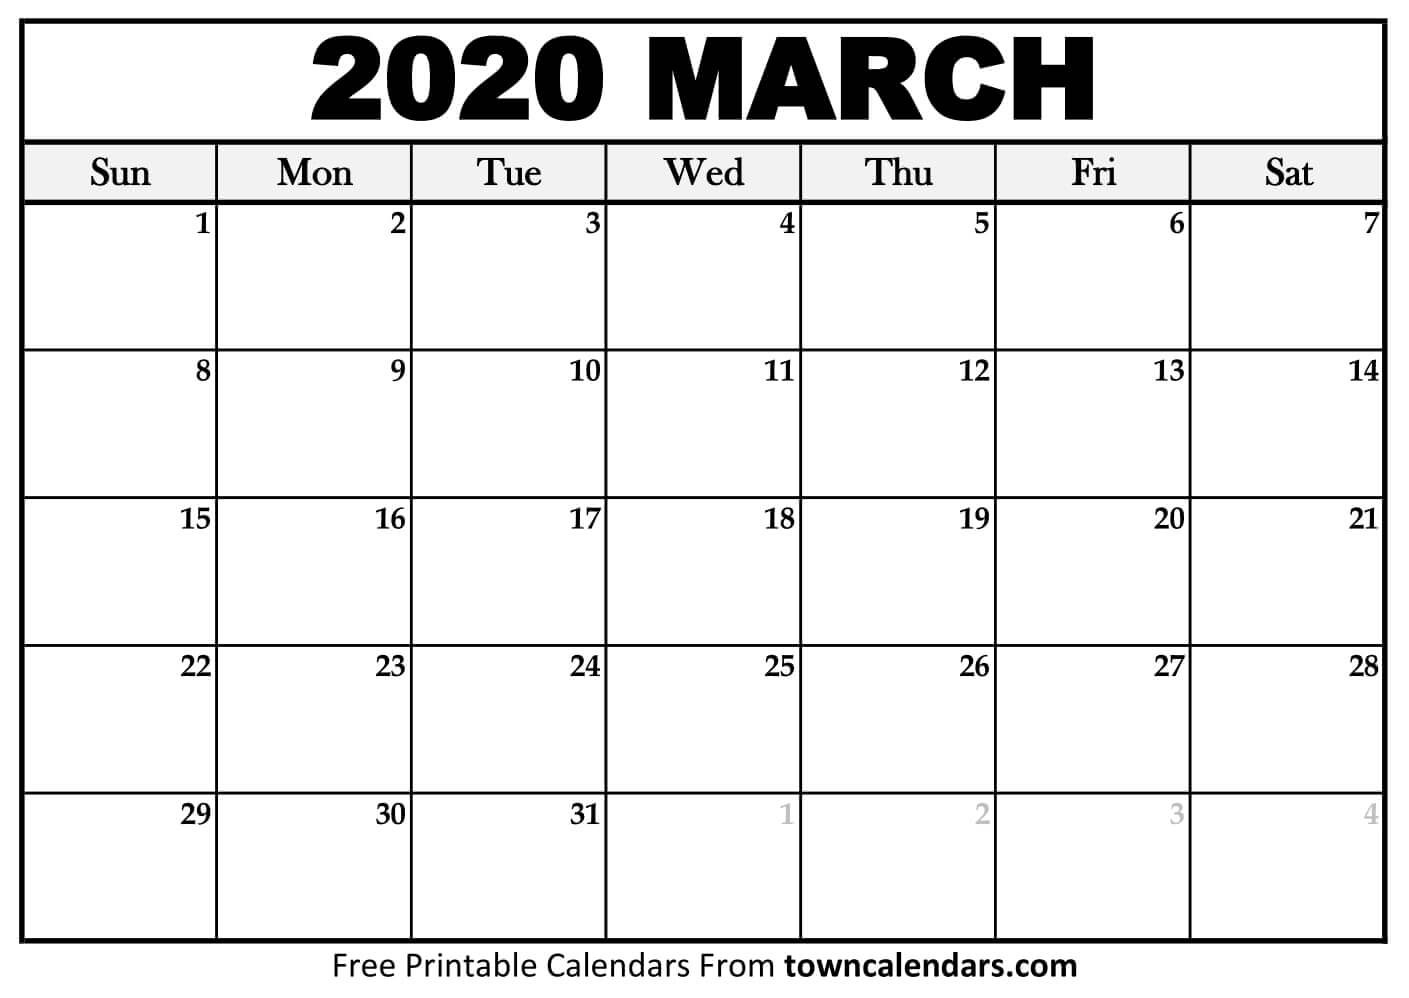 Printable March 2020 Calendar - Towncalendars  Printable March 2020 Calendar Pdf